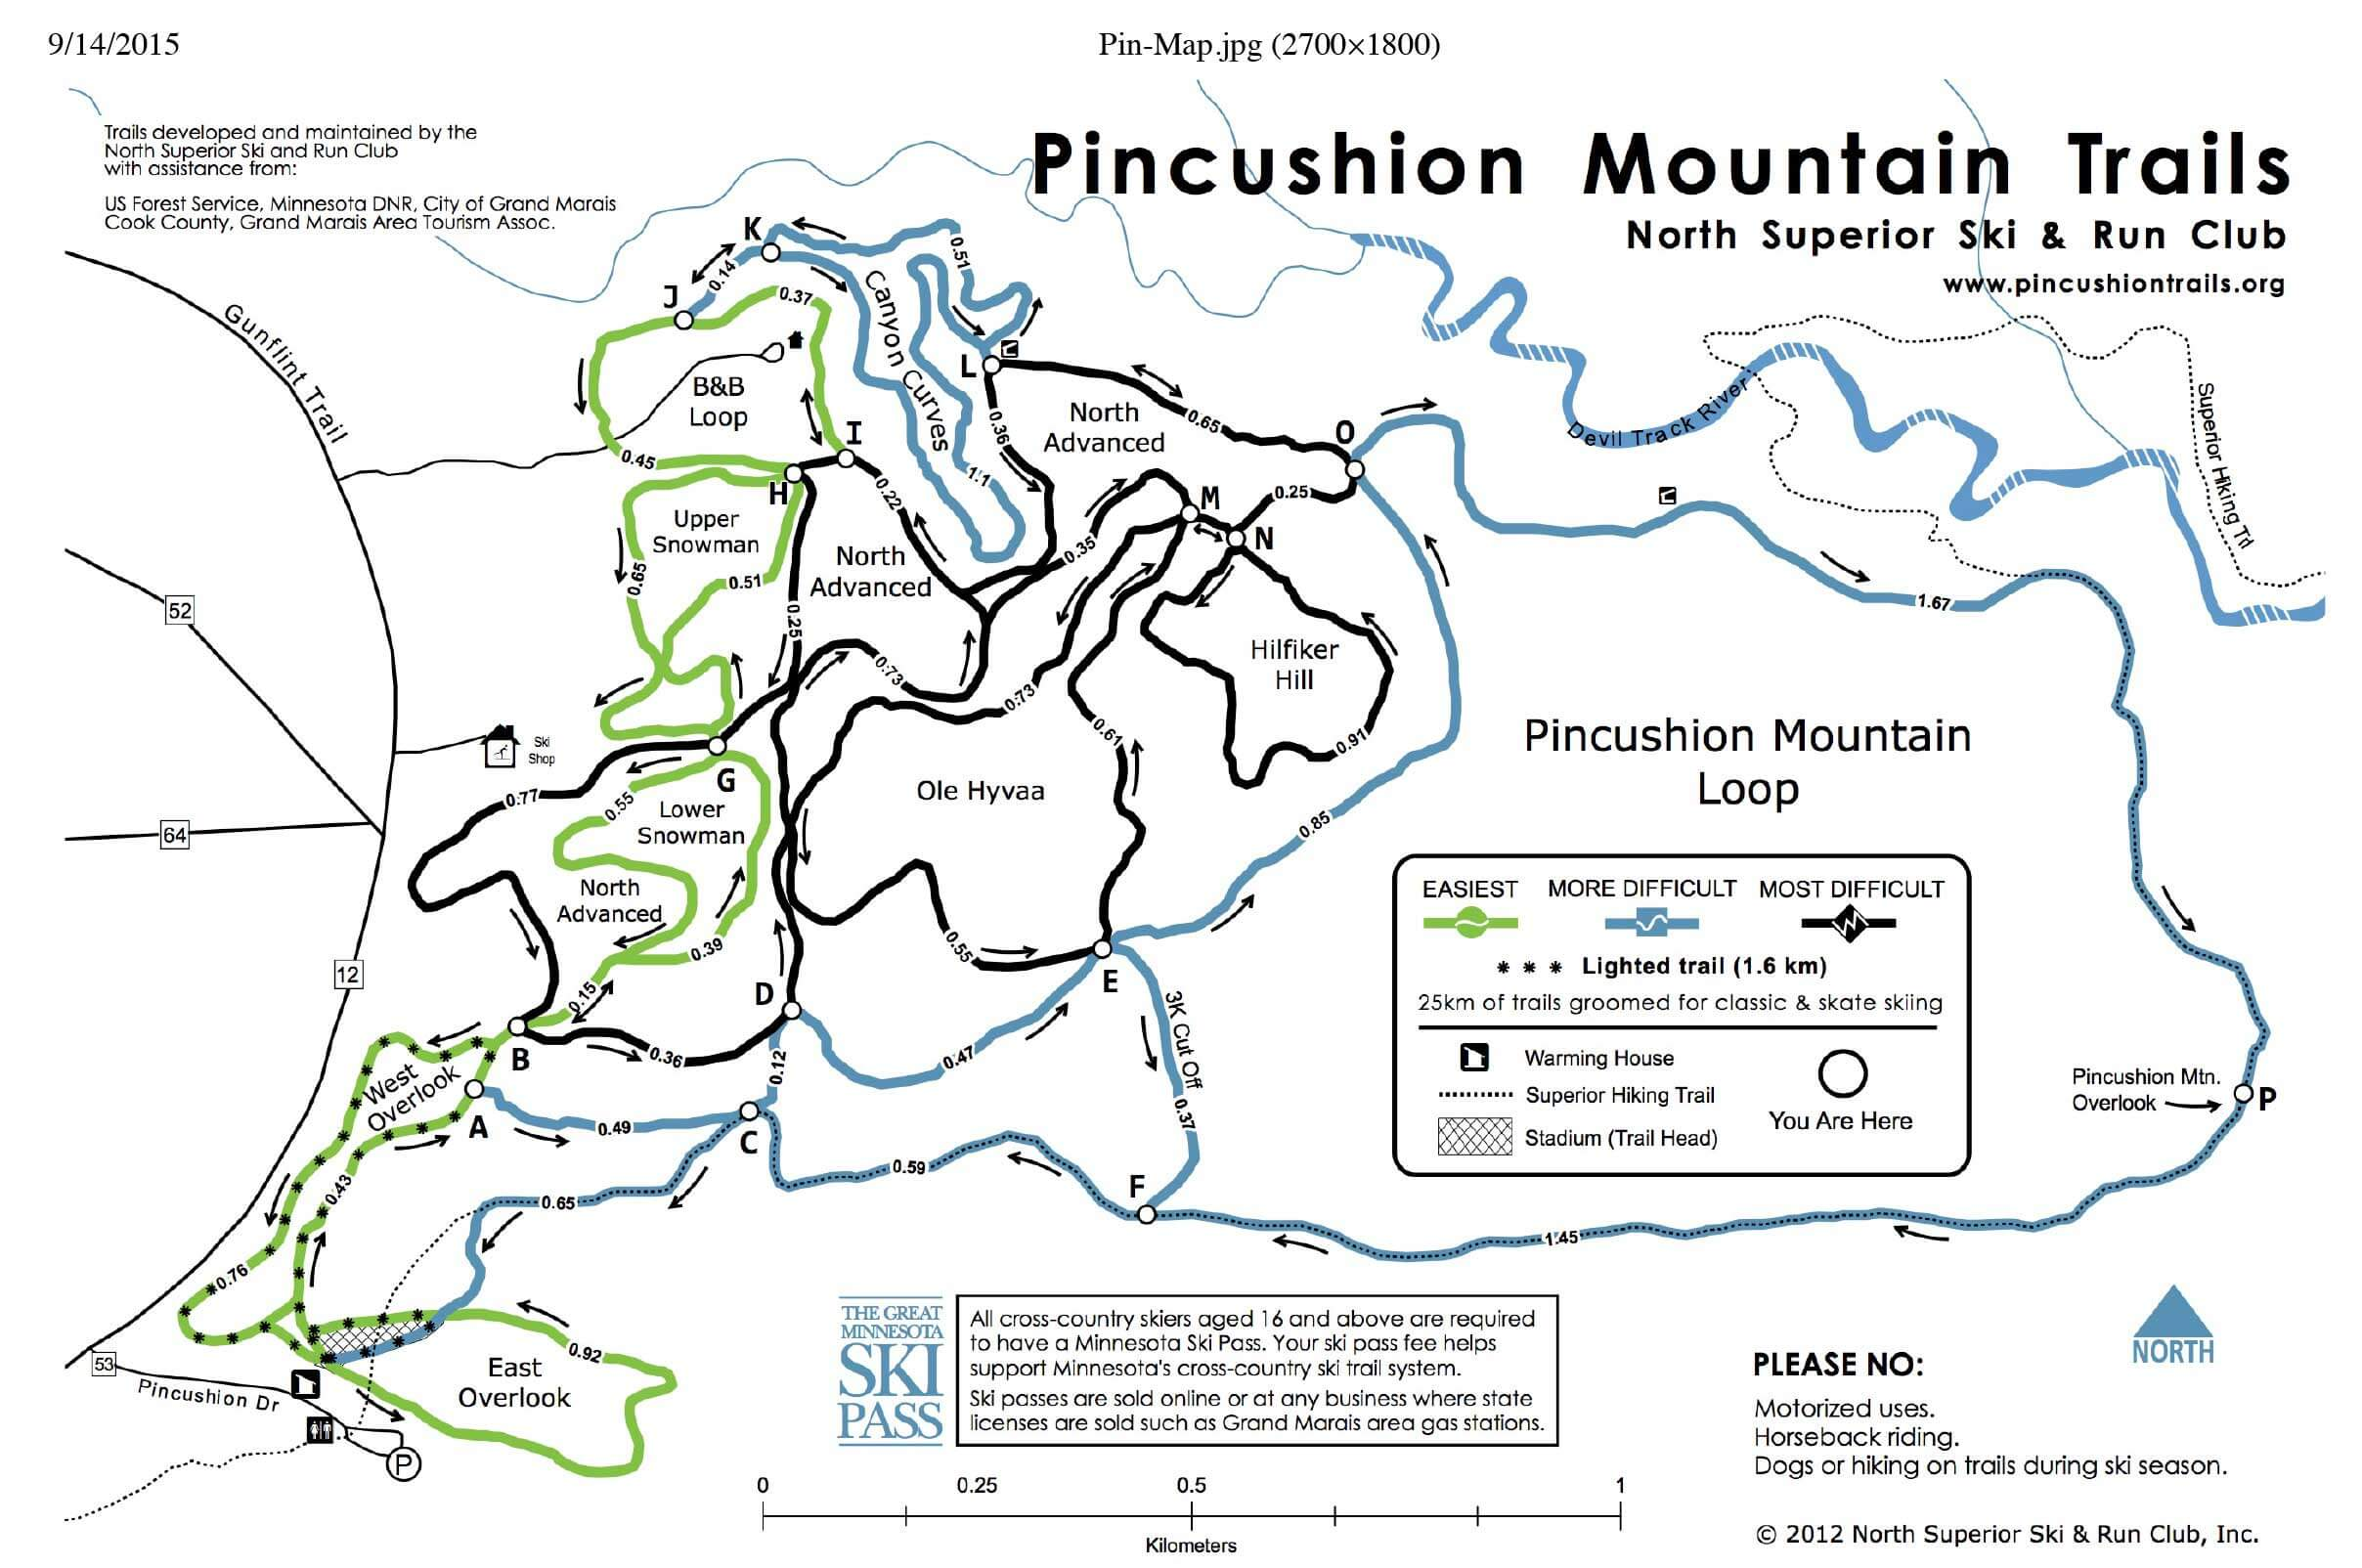 Pincushion Mountain Overlook